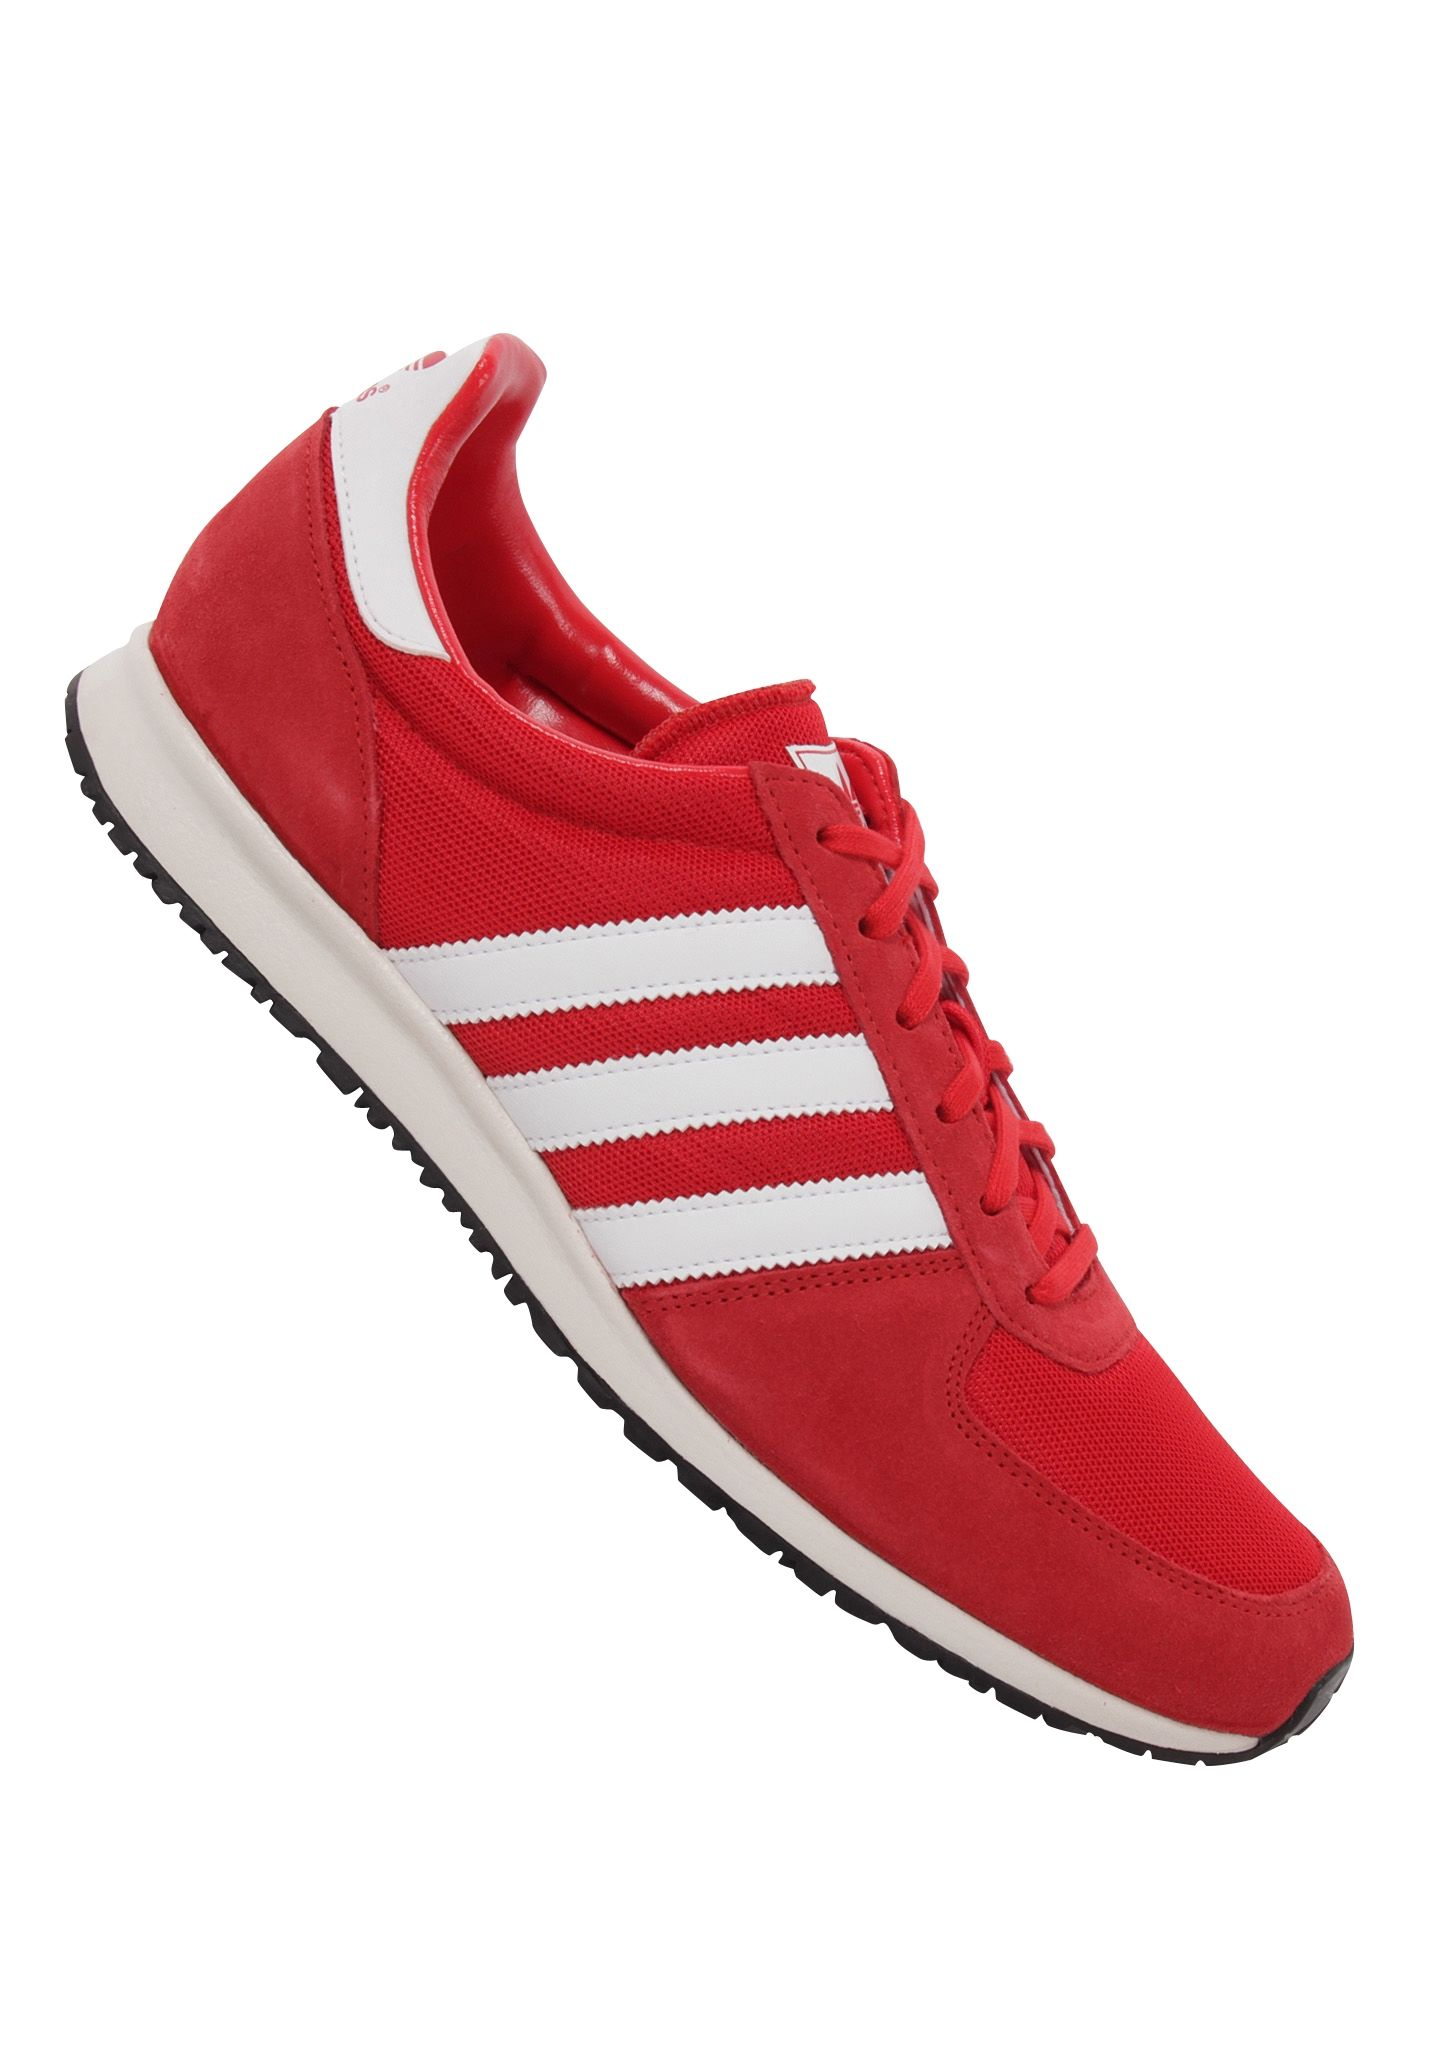 detailed look 1c35b 3d35e ADIDAS Adistar Racer - Sneakers for Men - Red - Planet Sport